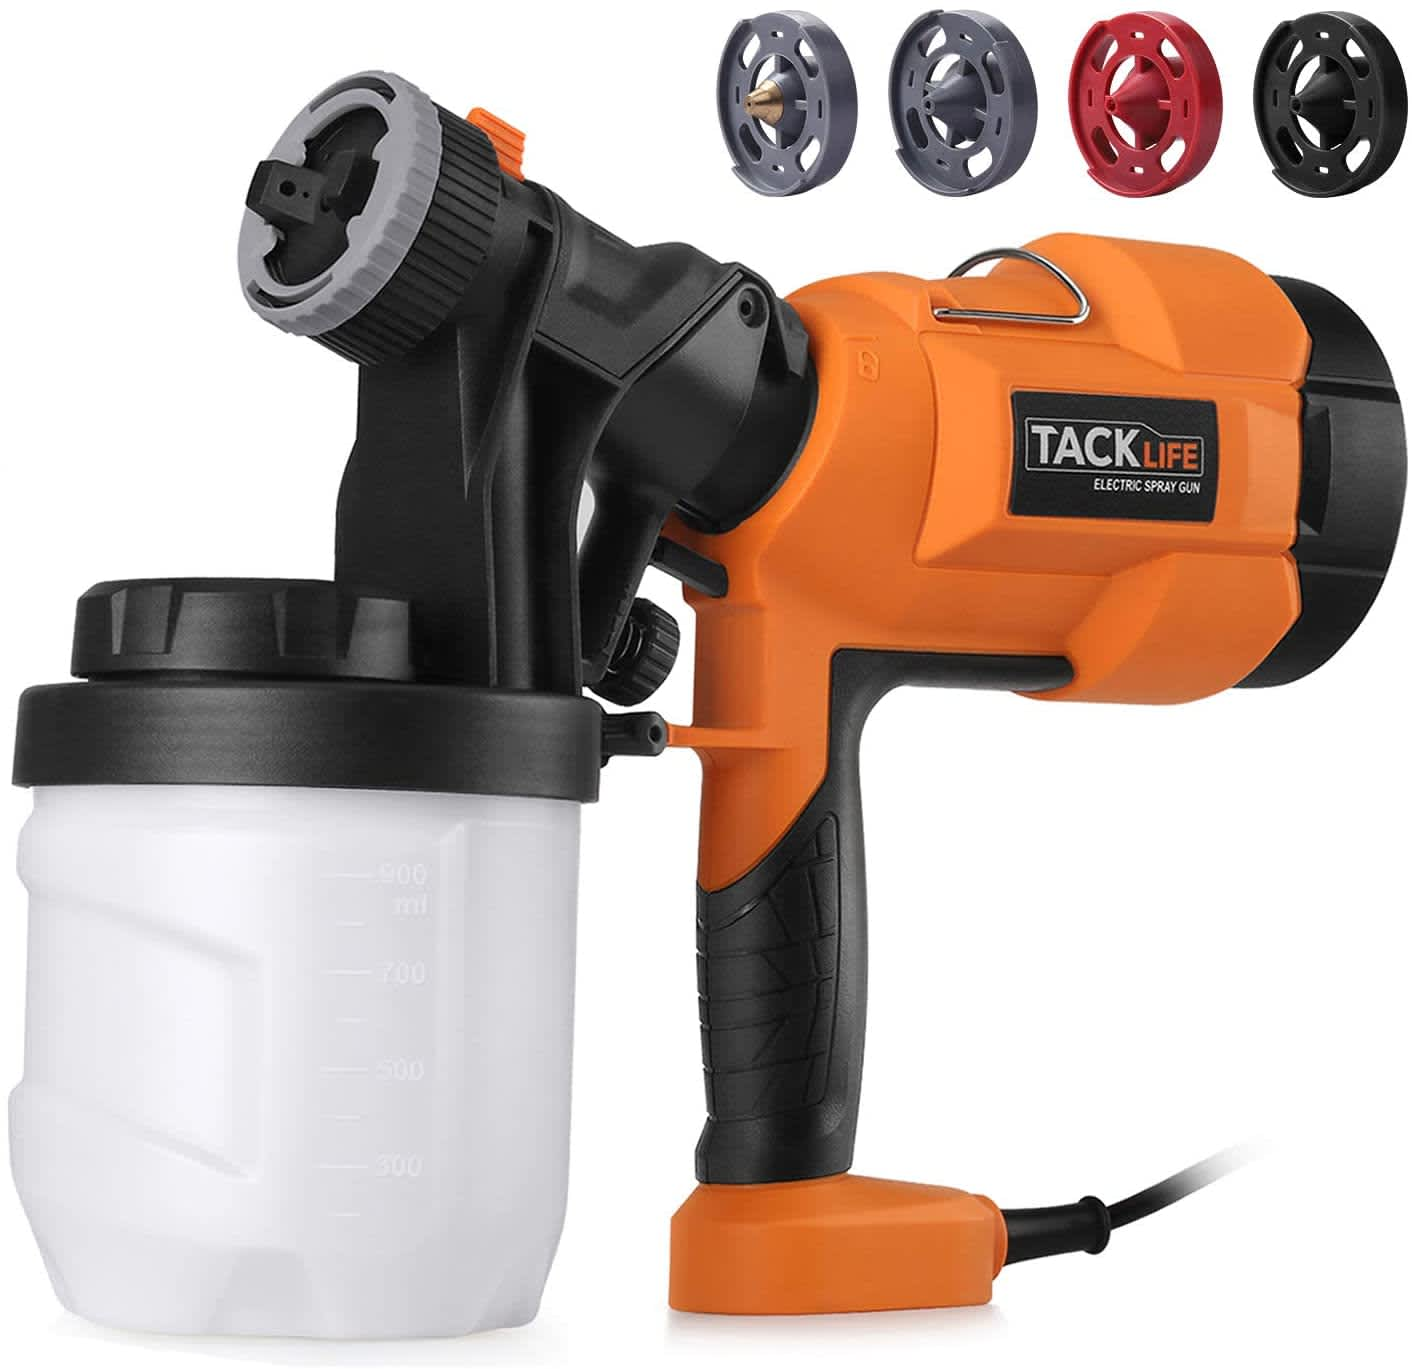 Tacklife Electric Paint Spray Gun